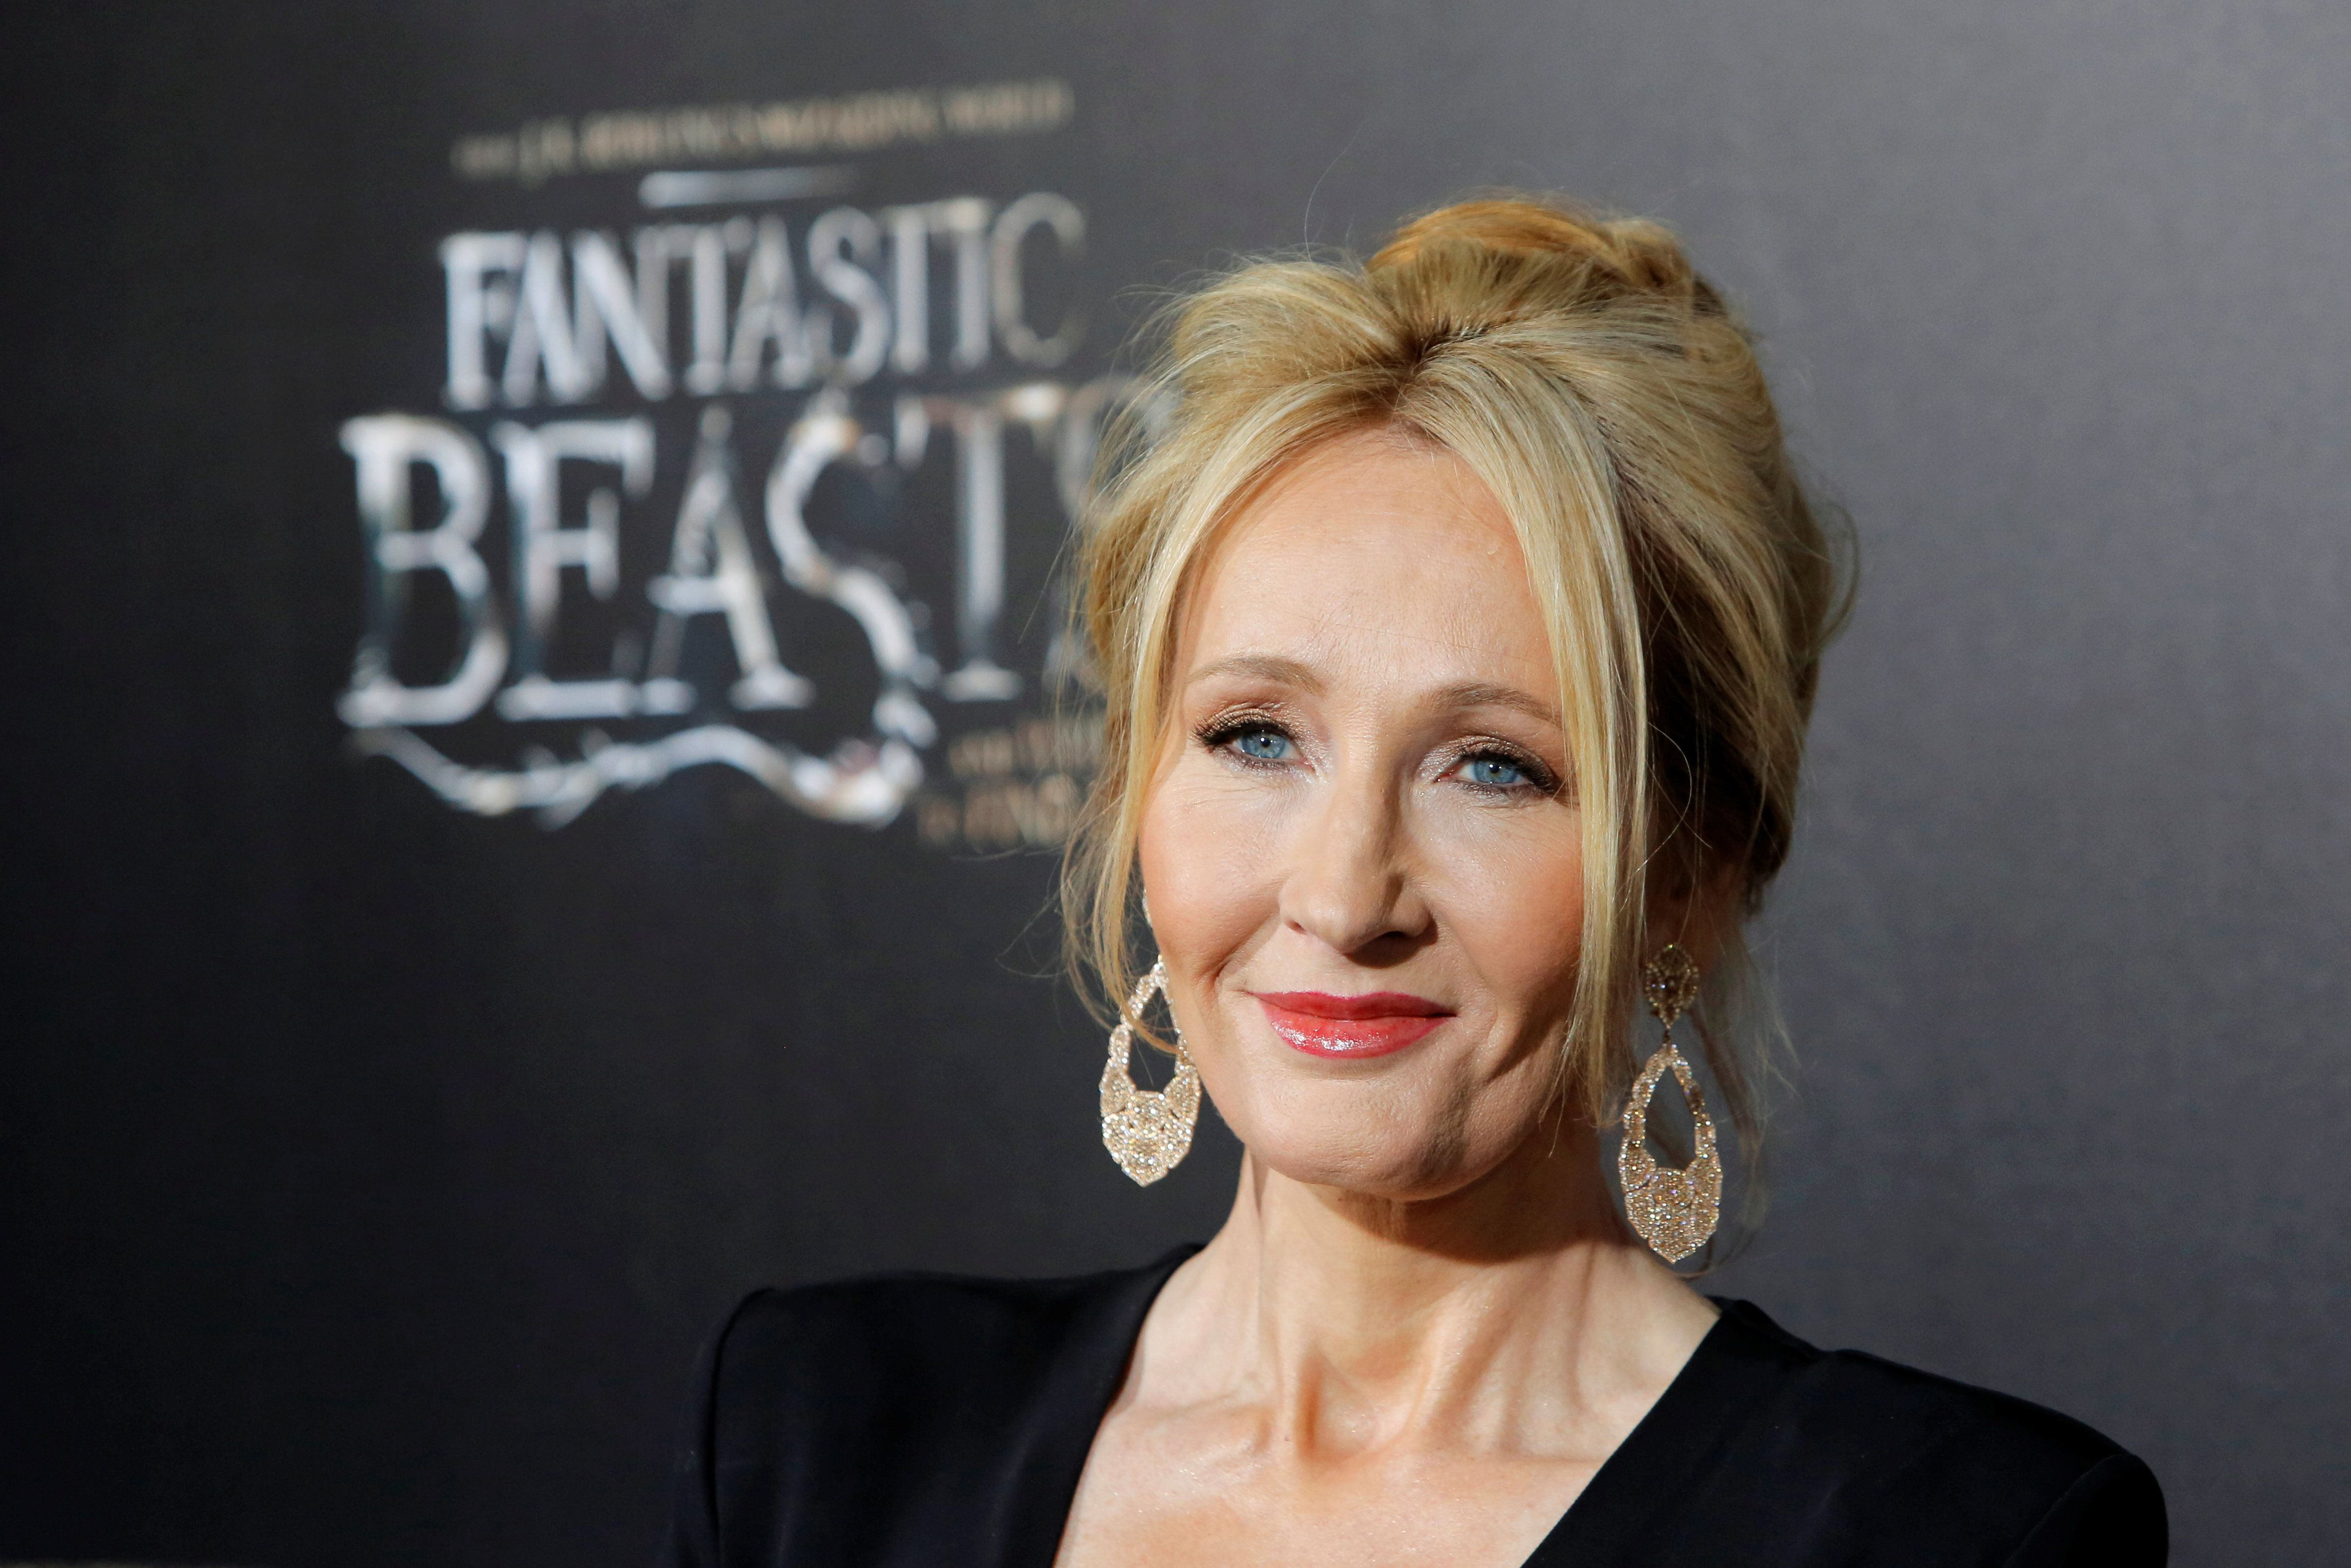 Author J.K. Rowling has used Twitter to comfort fans of her Harry Potter books who have